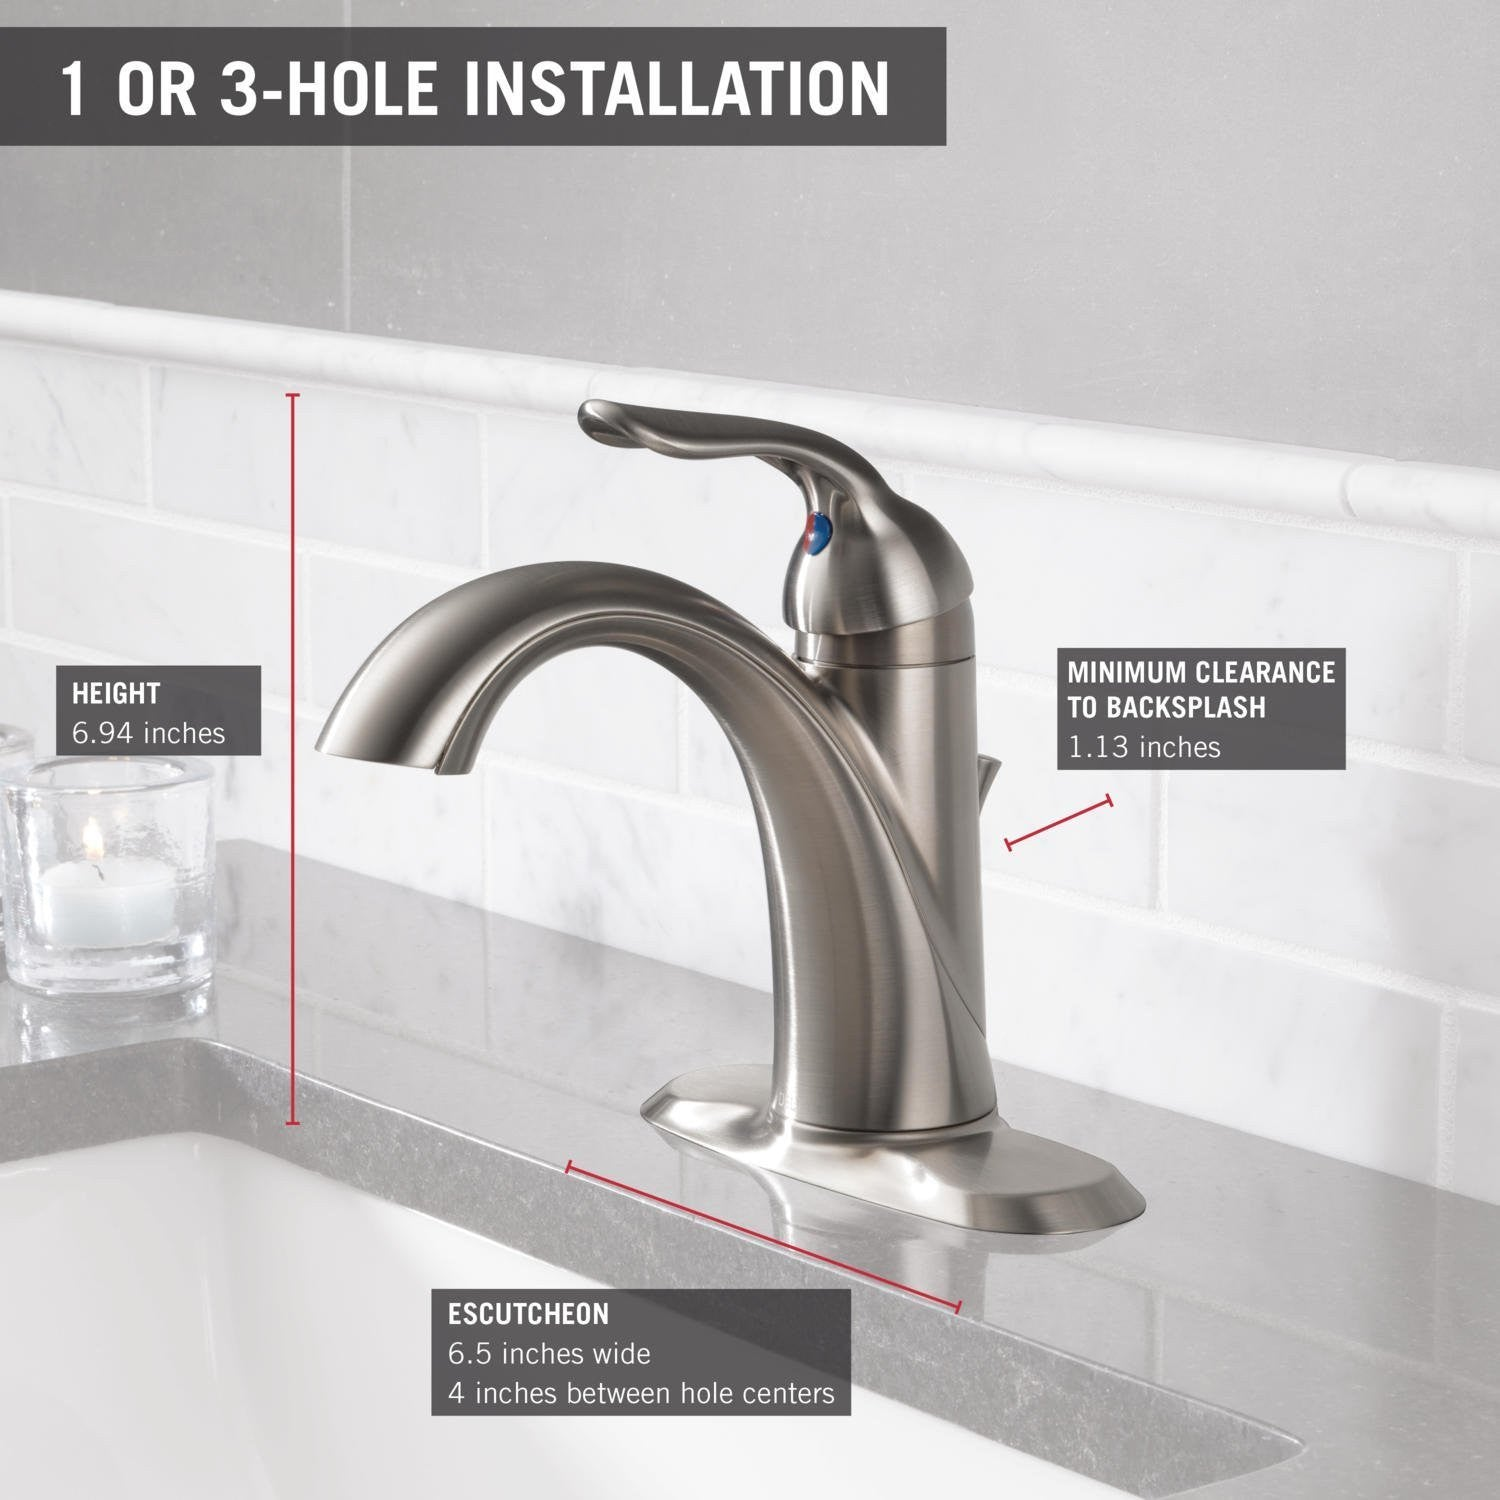 delta 538ssmpudst lahara single handle centerset lavatory faucet stainless give10back givetenback - Delta Lahara